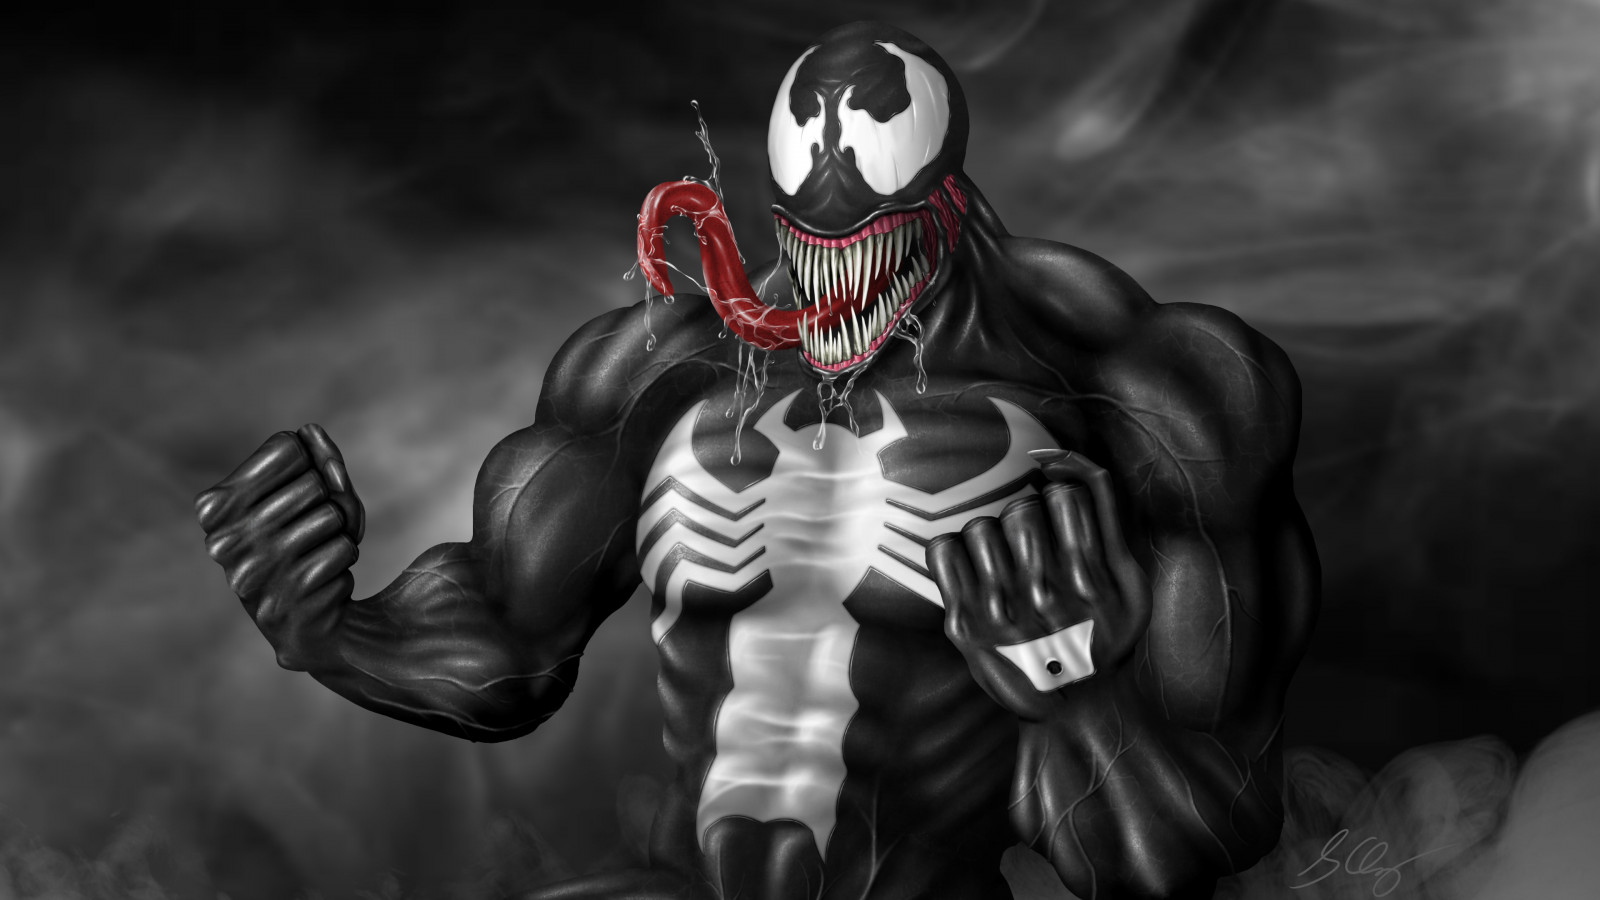 Venom fan art wallpaper 1600x900